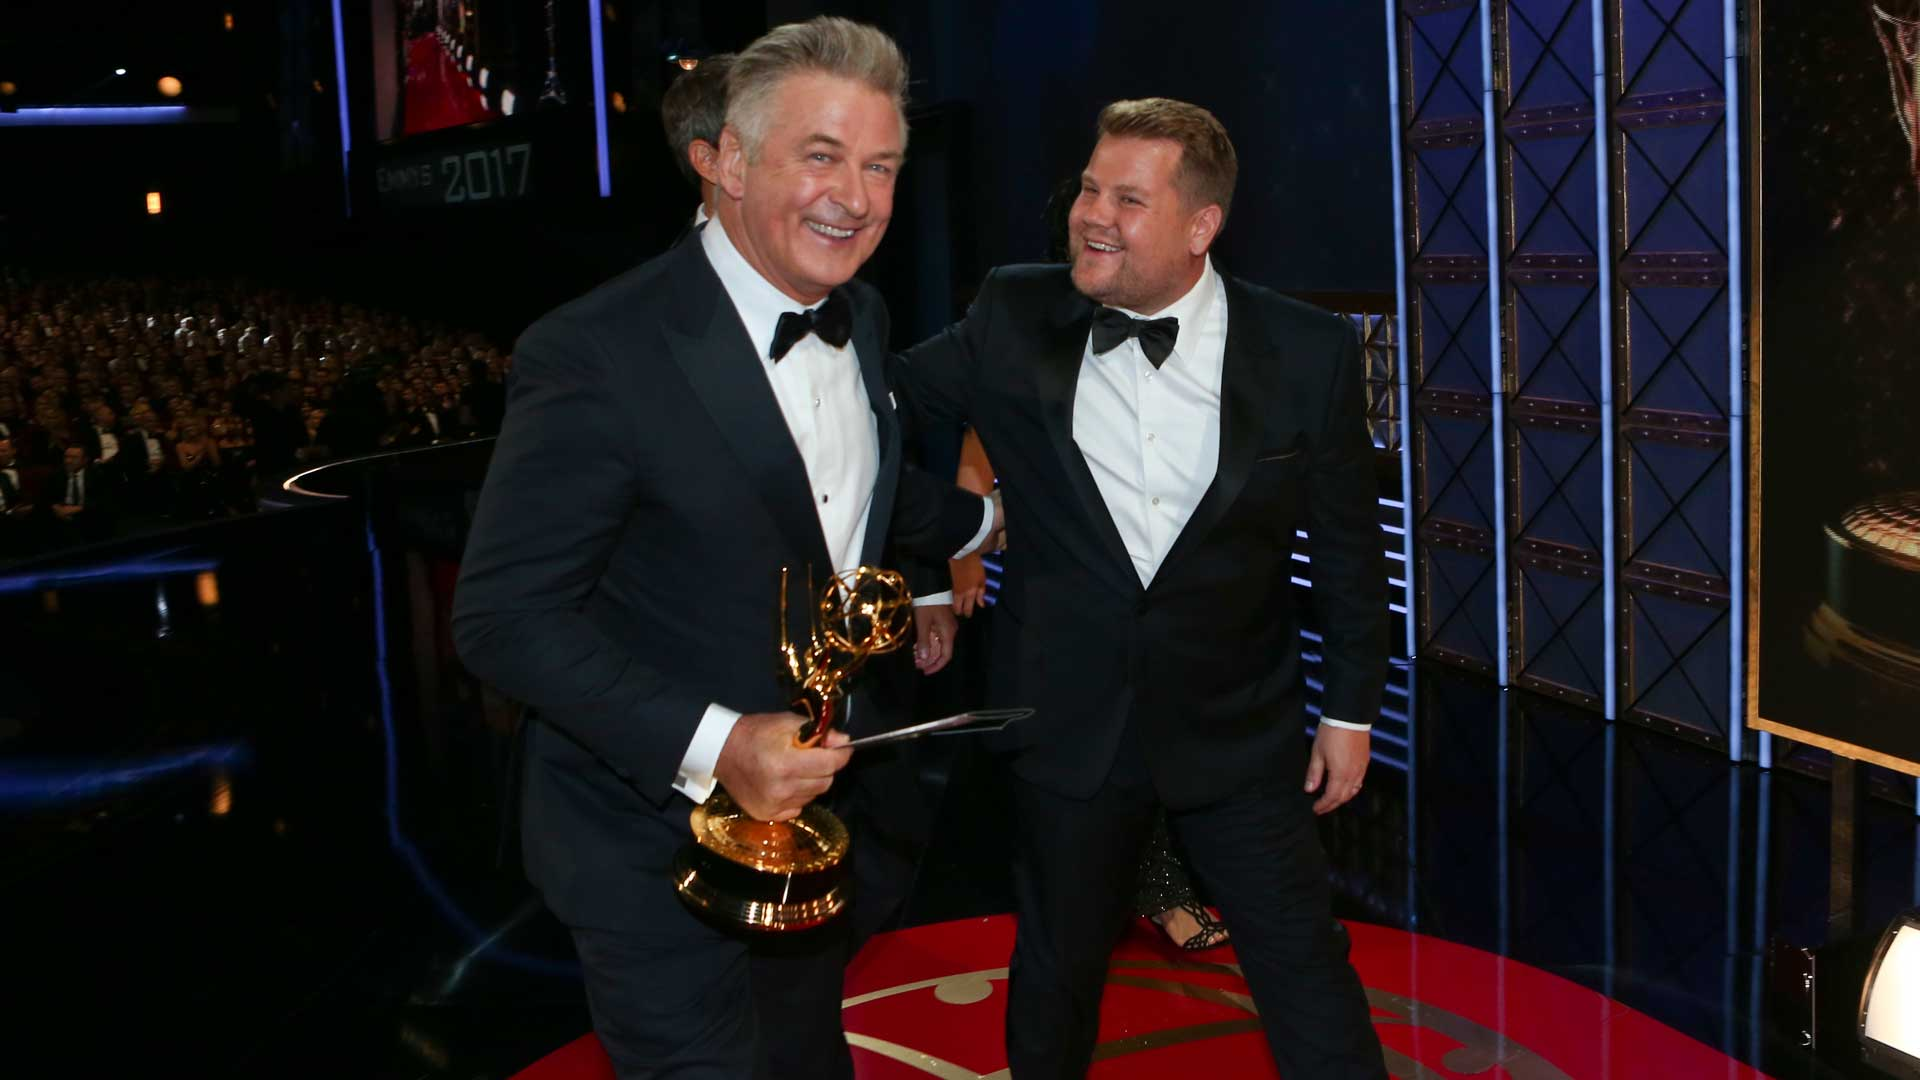 James Corden pats Alec Baldwin on the back he wins an Emmy for Outstanding Supporting Actor in a Comedy Series.